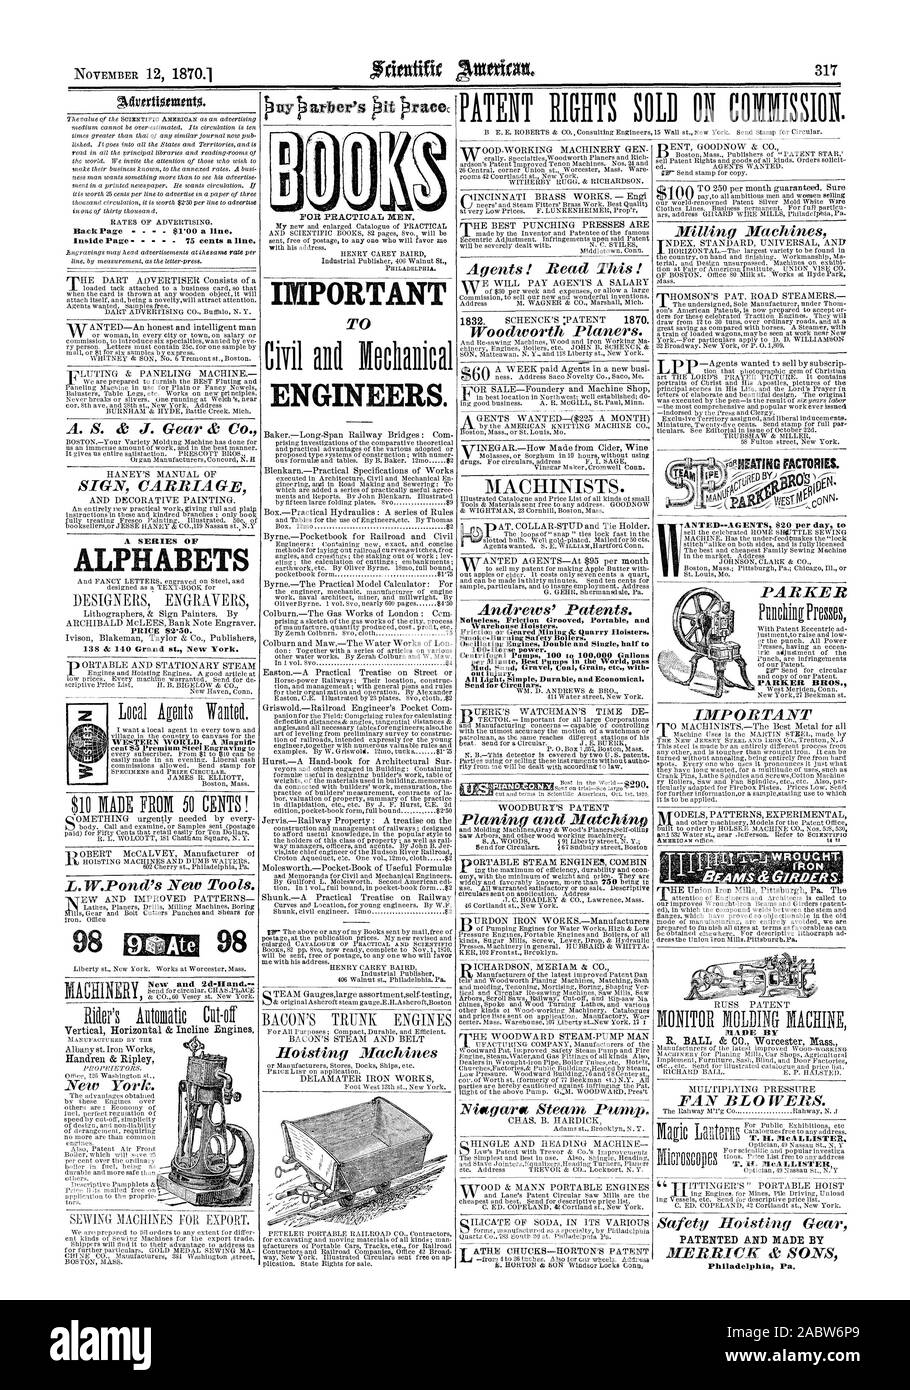 """ALPHABETS IMPORTANT ENGINEERS. PATENTED AND MADE BY Philadelphia Pa. 98 Ate 98 New and 2d-liand."""" PARKER BROS., scientific american, 1870-11-12 Stock Photo"""